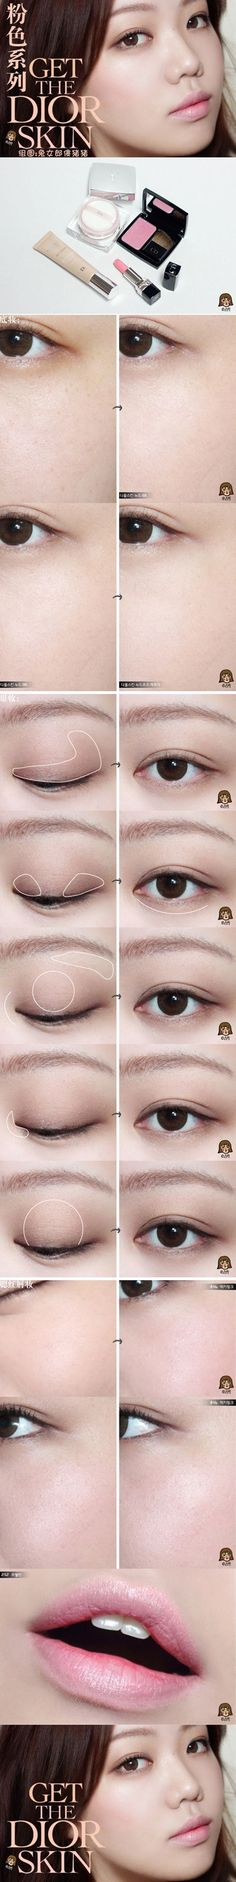 Eye Korean Natural Makeup Asian Beauty 67 Ideas For 2019 # colorful … - therezepte sites Asian Makeup Looks, Korean Natural Makeup, Korean Makeup Look, Asian Eye Makeup, Asian Makeup Tutorials, Beauty Tutorials, Make Up Looks, Asian Inspired Makeup, Red Lipstick Makeup